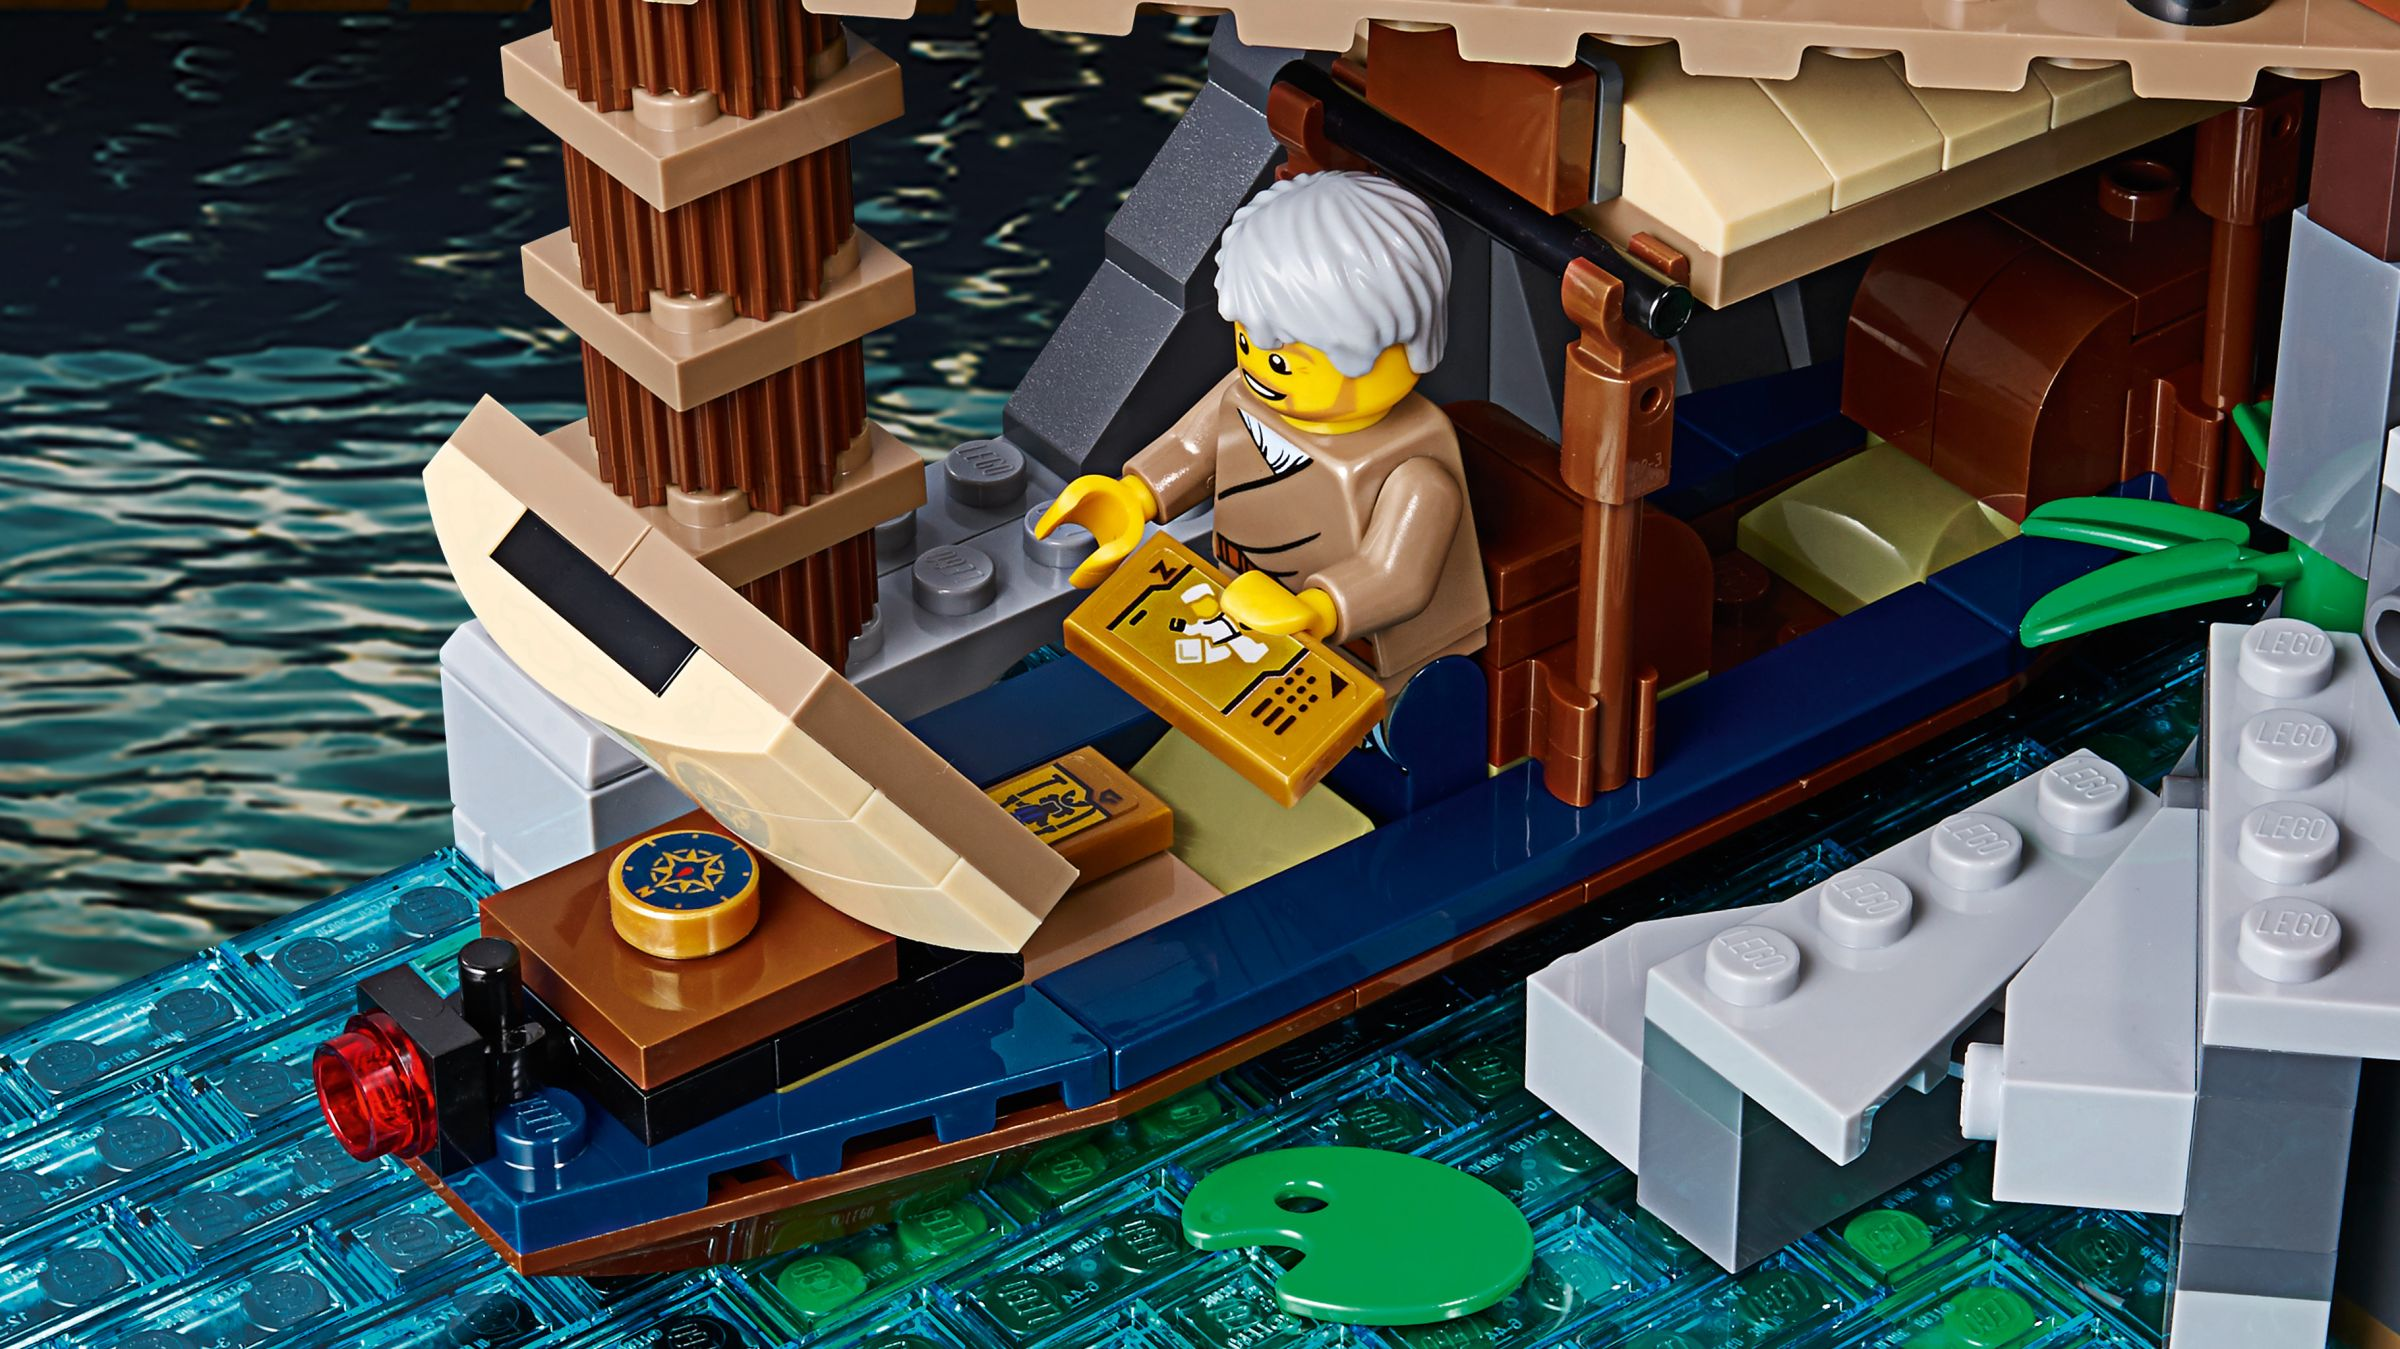 LEGO The LEGO Ninjago Movie 70657 Ninjago City Hafen LEGO_70657_Ninjago_City_Hafen_img13.jpg